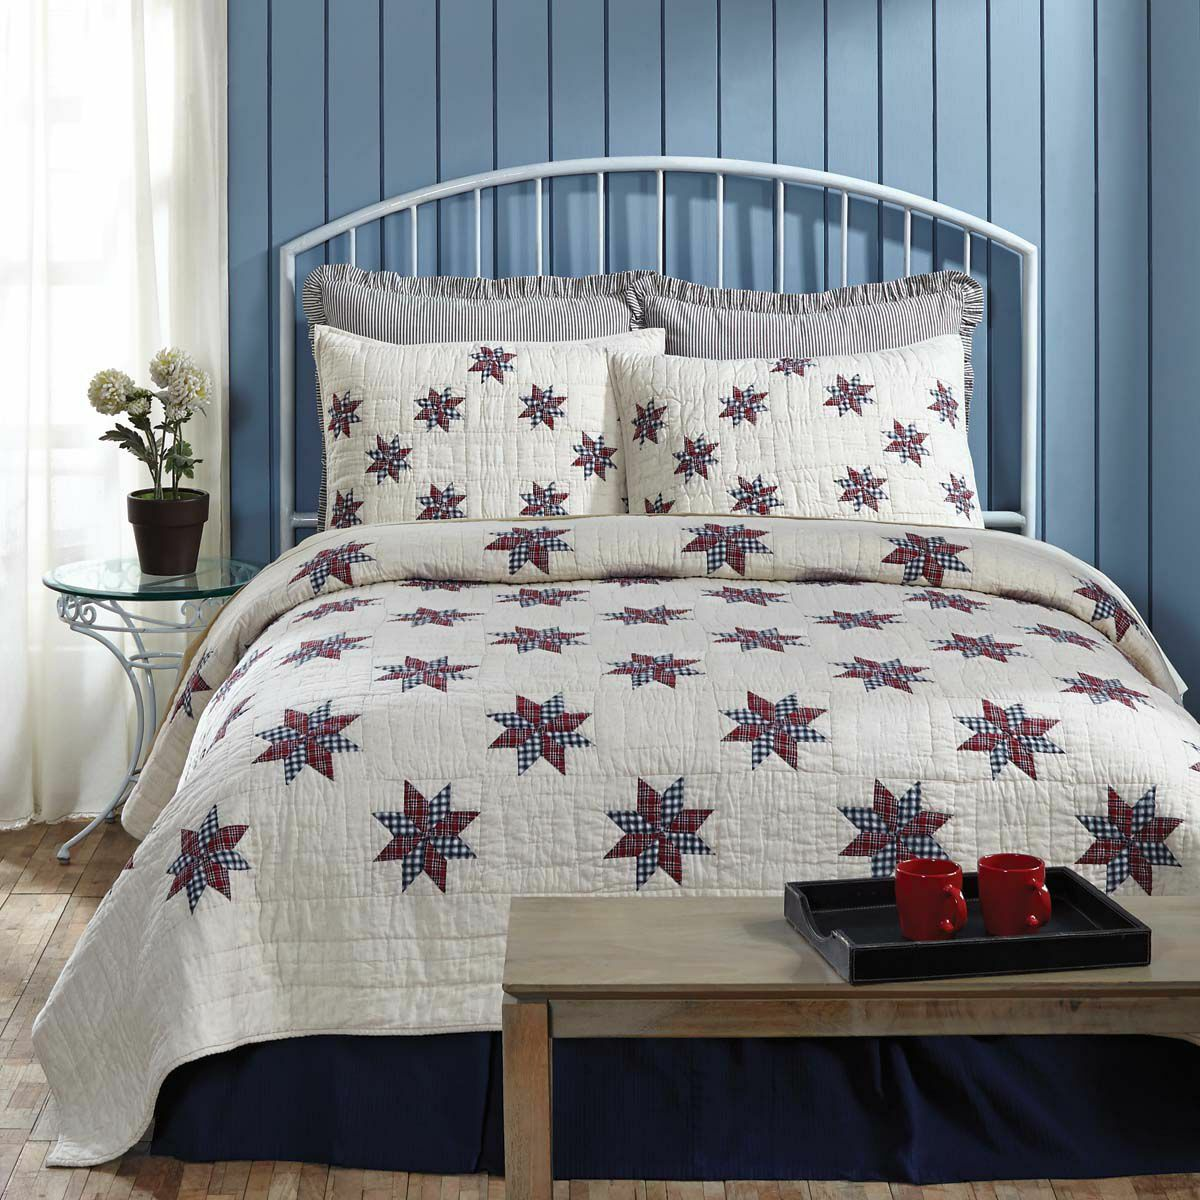 LINCOLN STAR 3pc Full Queen QUILT   AMERICANA COUNTRY 8 POINT rosso NAVY PLAID